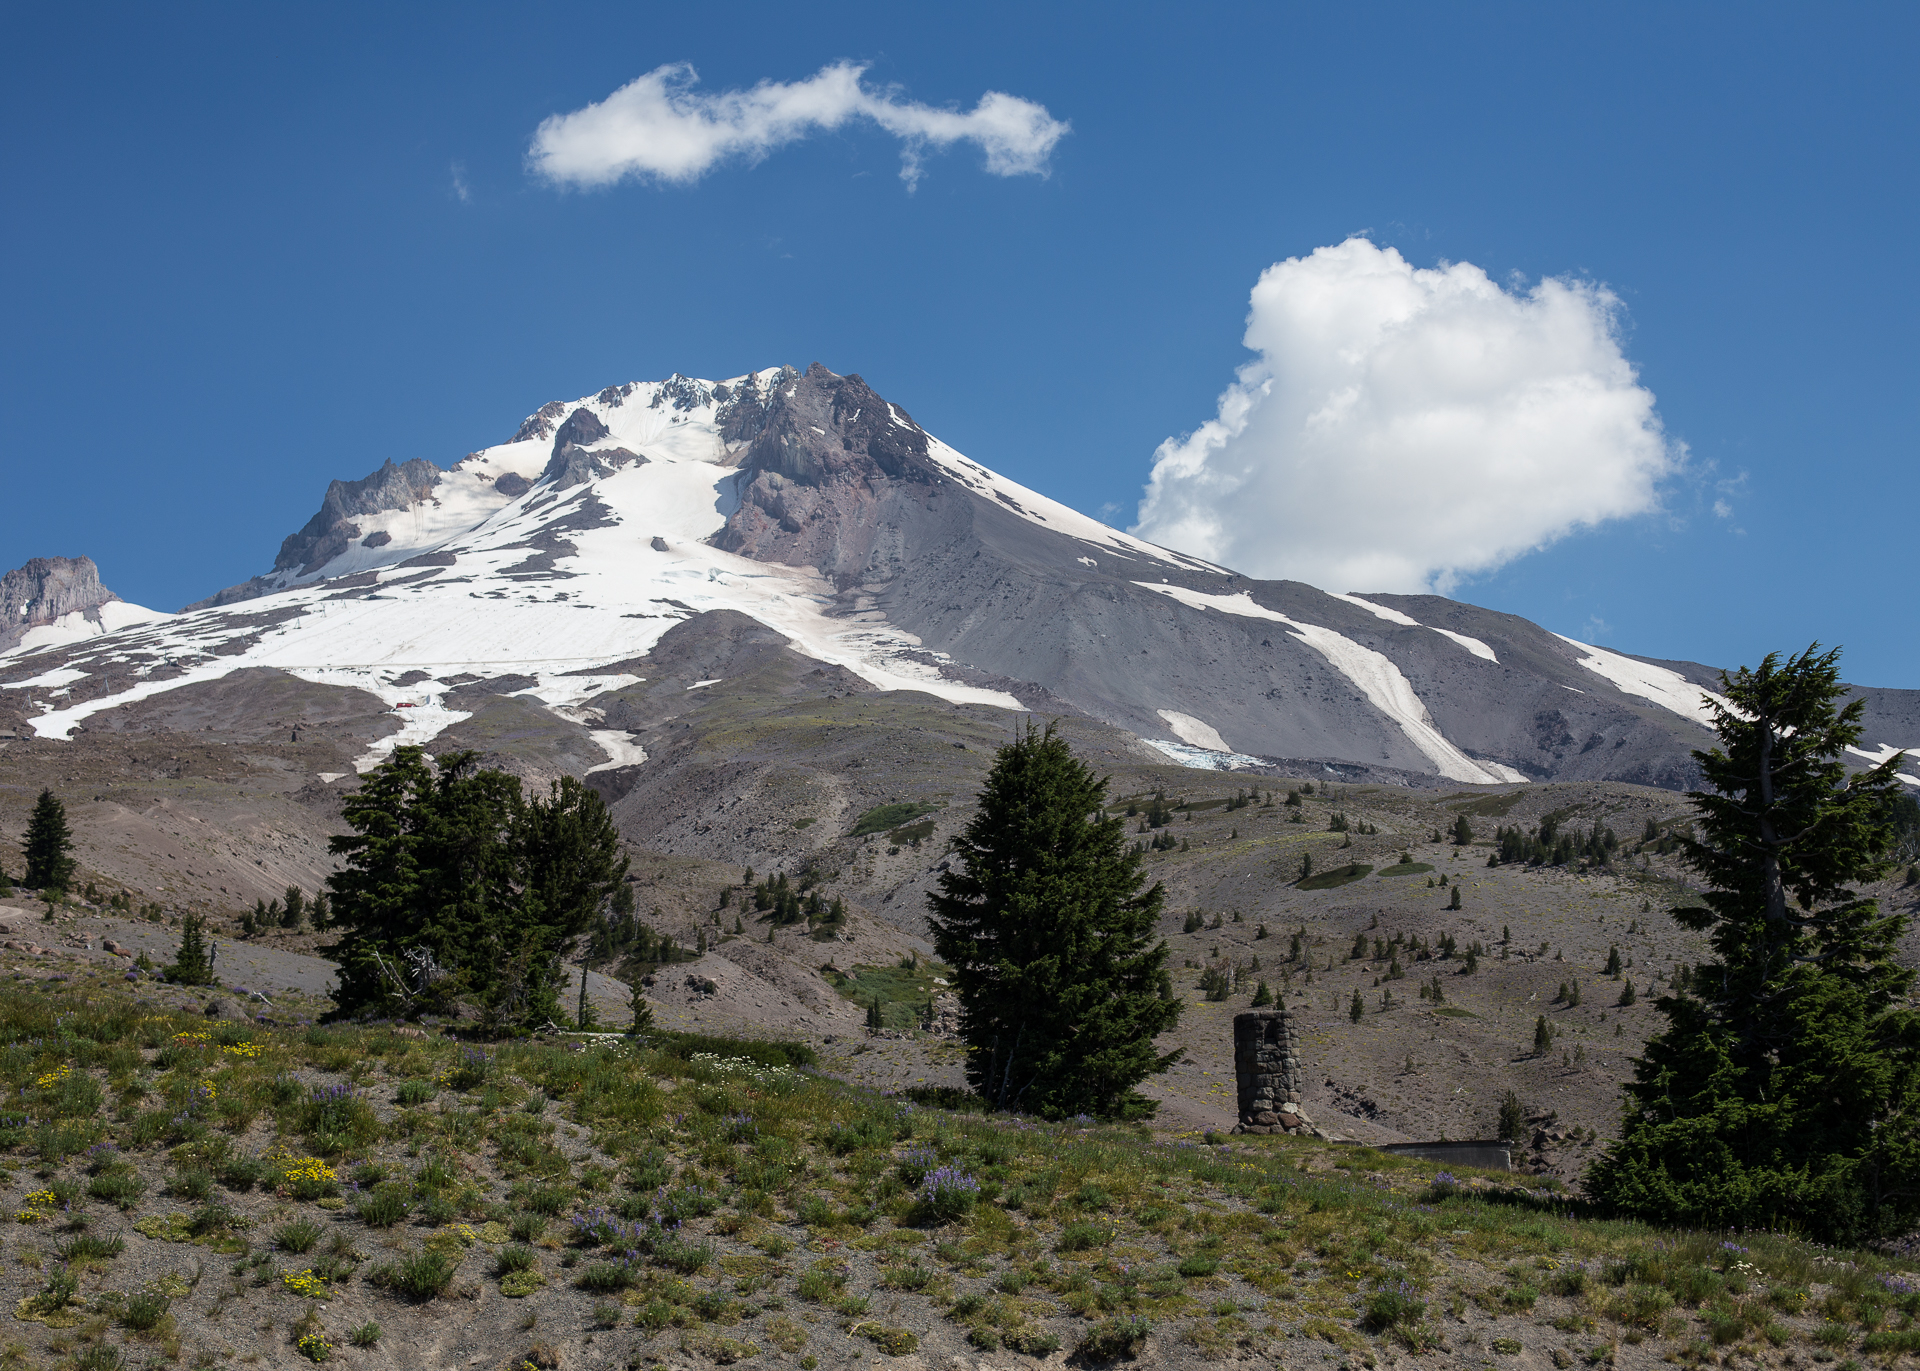 Mount Hood, from the Timberline Lodge parking lot.